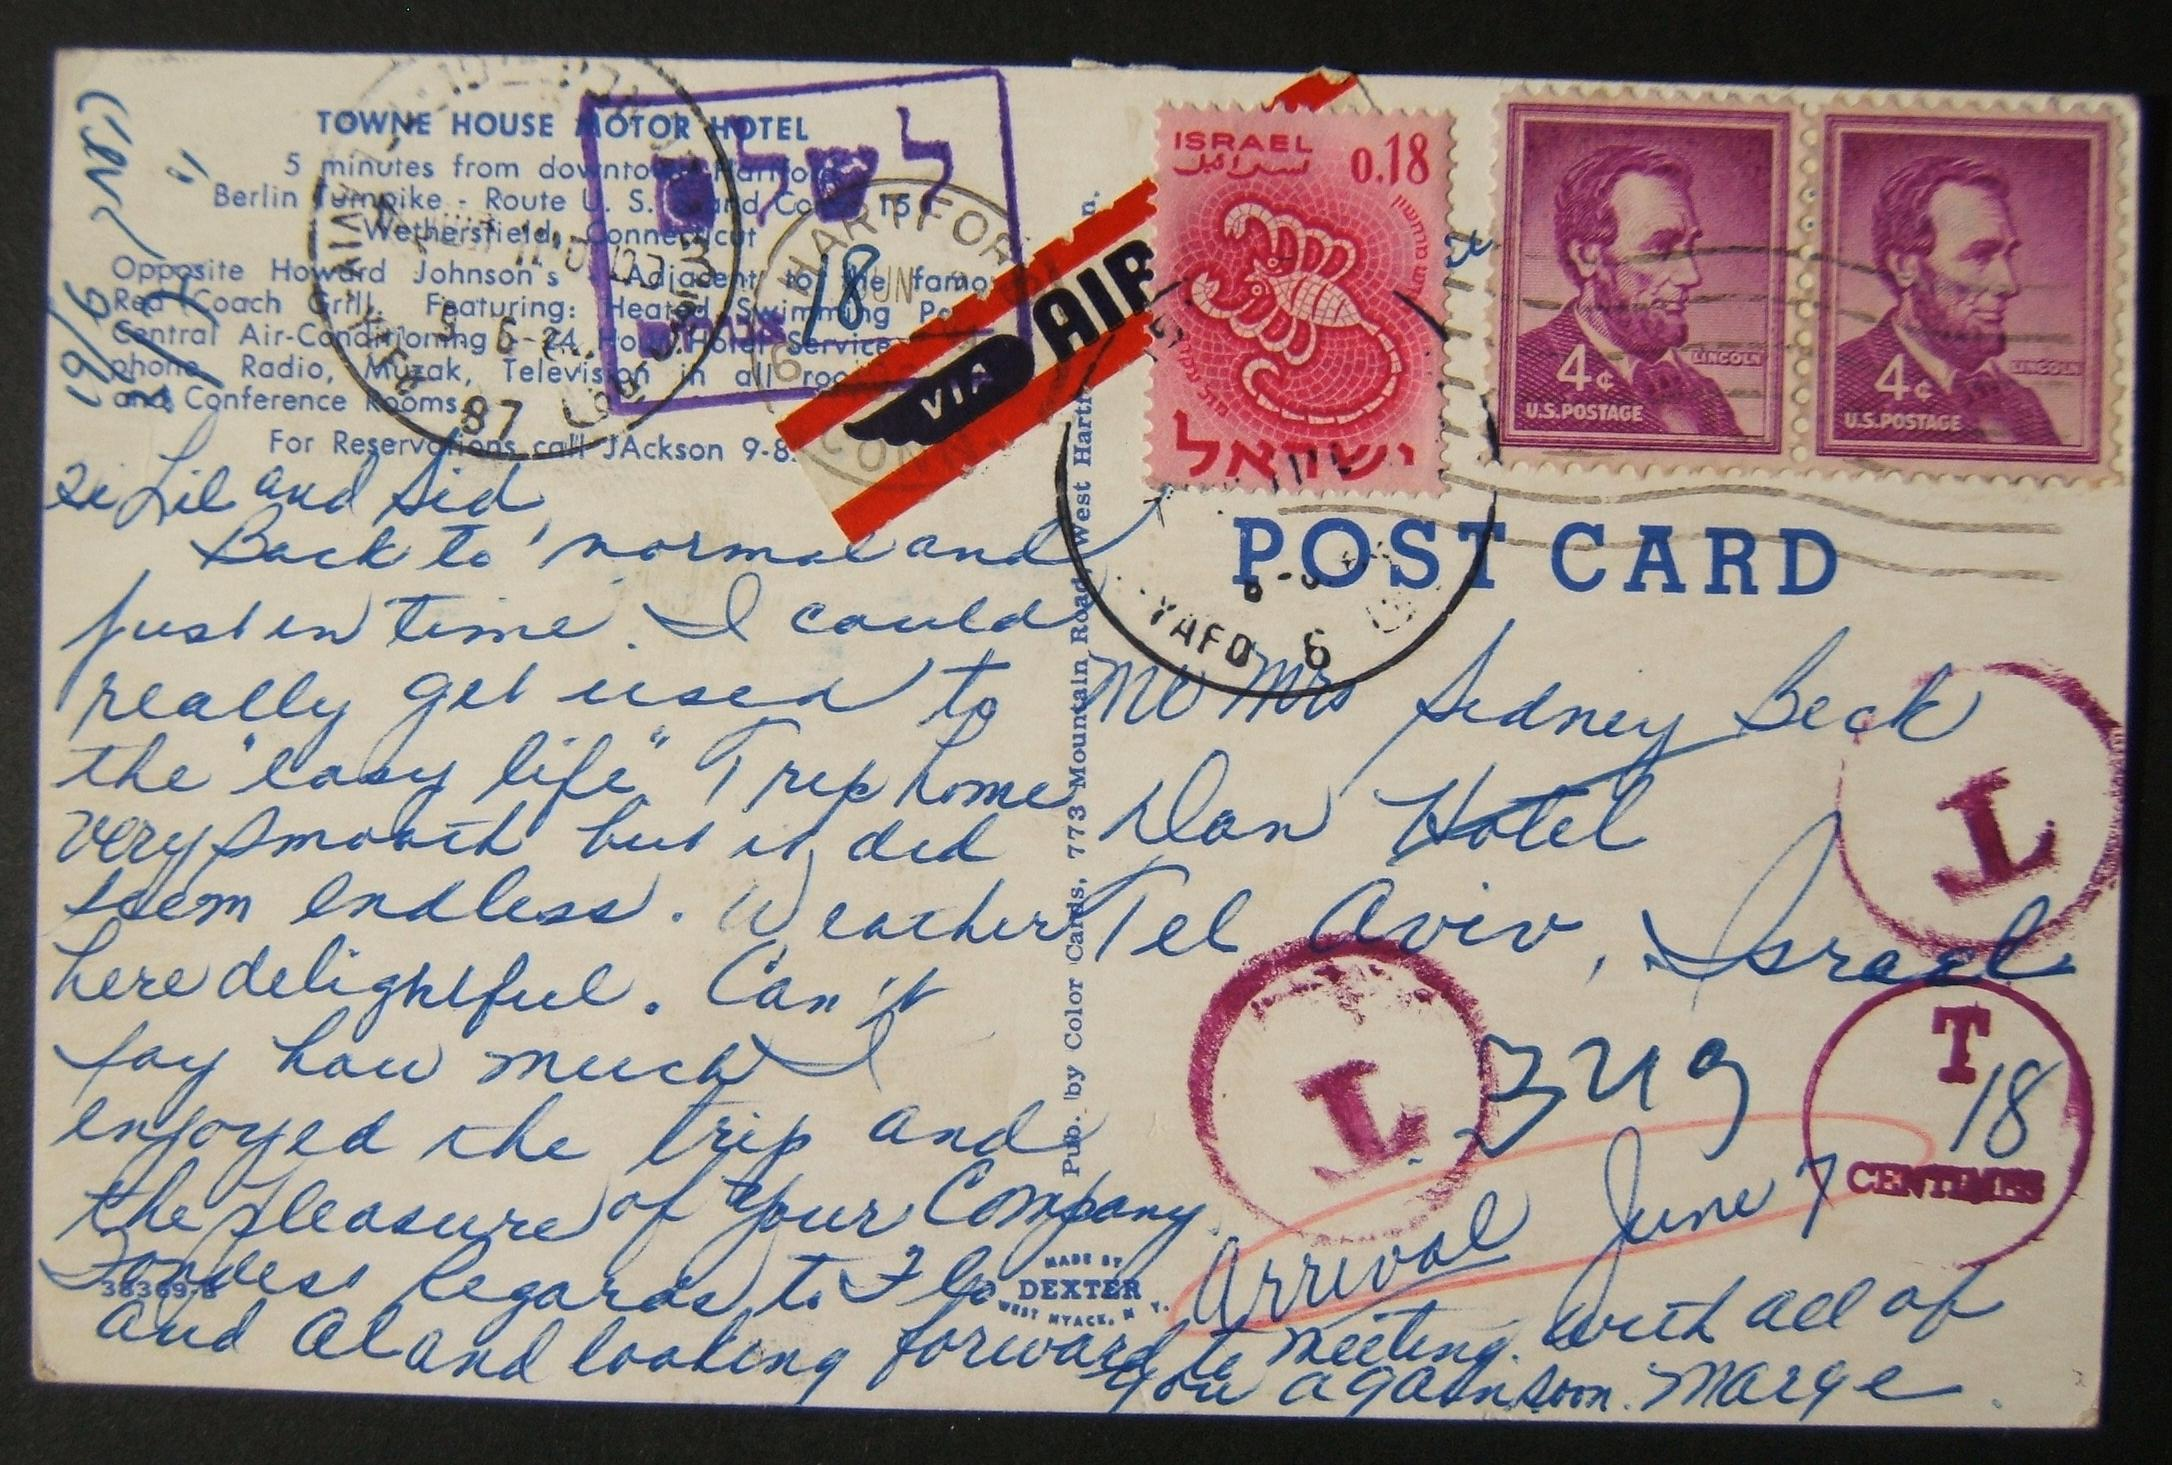 1964 incoming US taxed mail: JUN 2 1964 airmail ppc motor hotel ex HARTFORD to TLV underfranked at $0.08 and taxed 0.18L in Israel, paid 6(?)-6-64 using 1961 Zodiac Ba211 frank tie